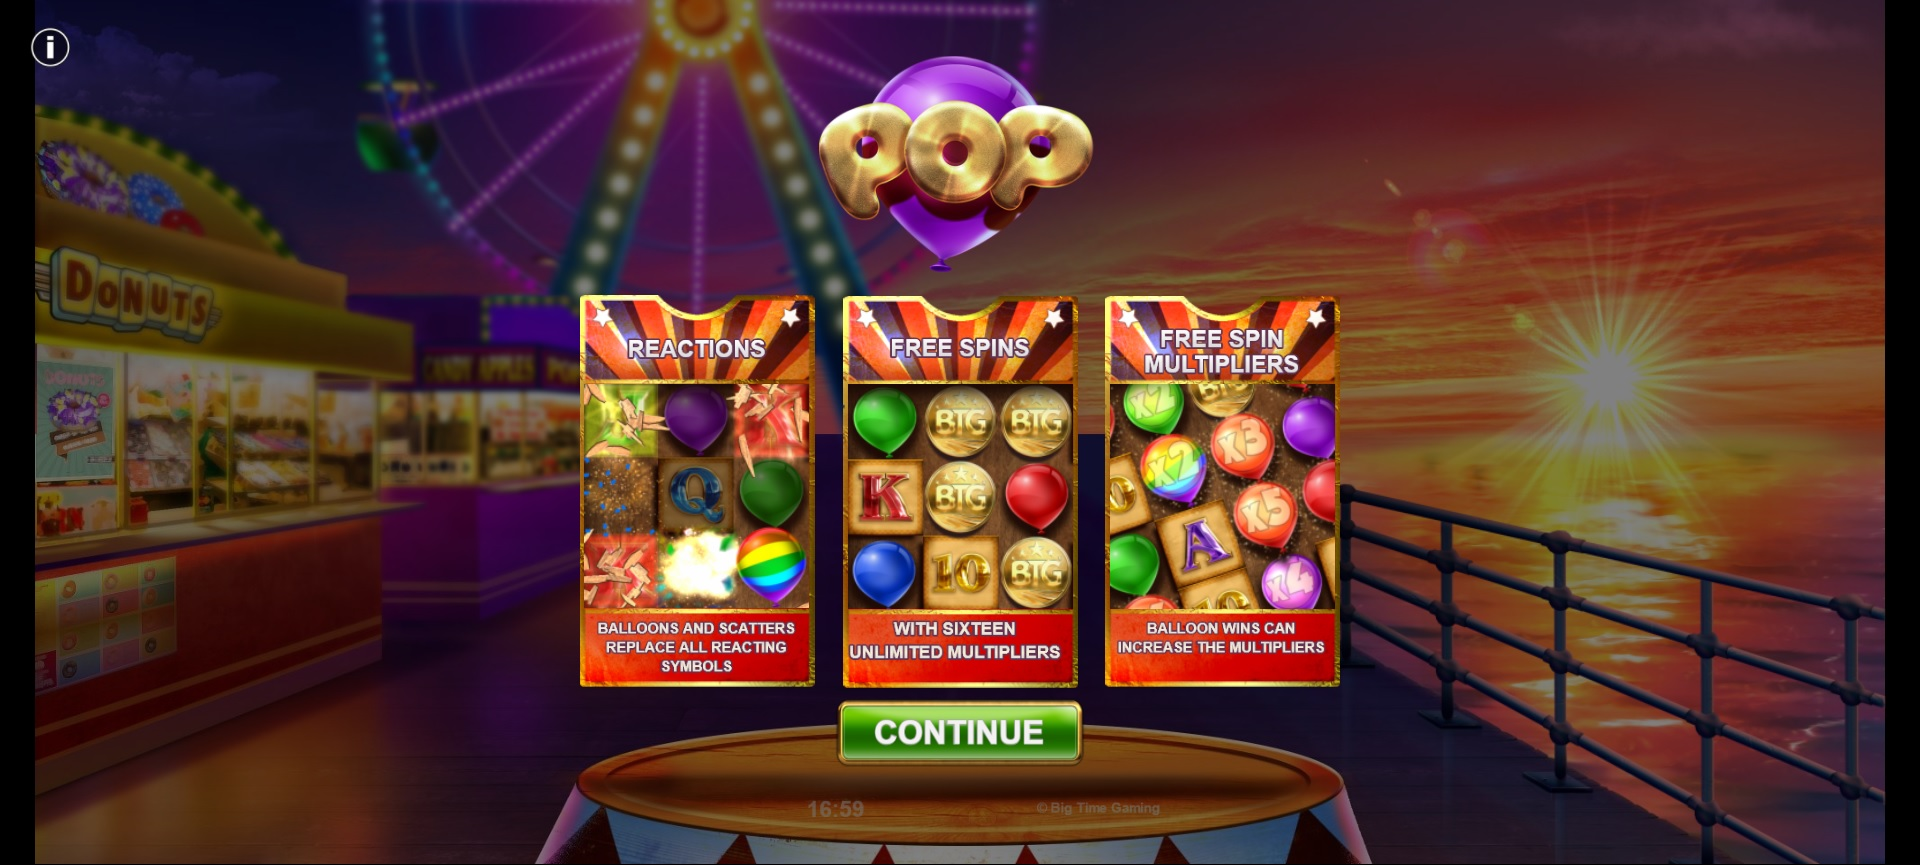 How to win big in Pop – Free Spins feature